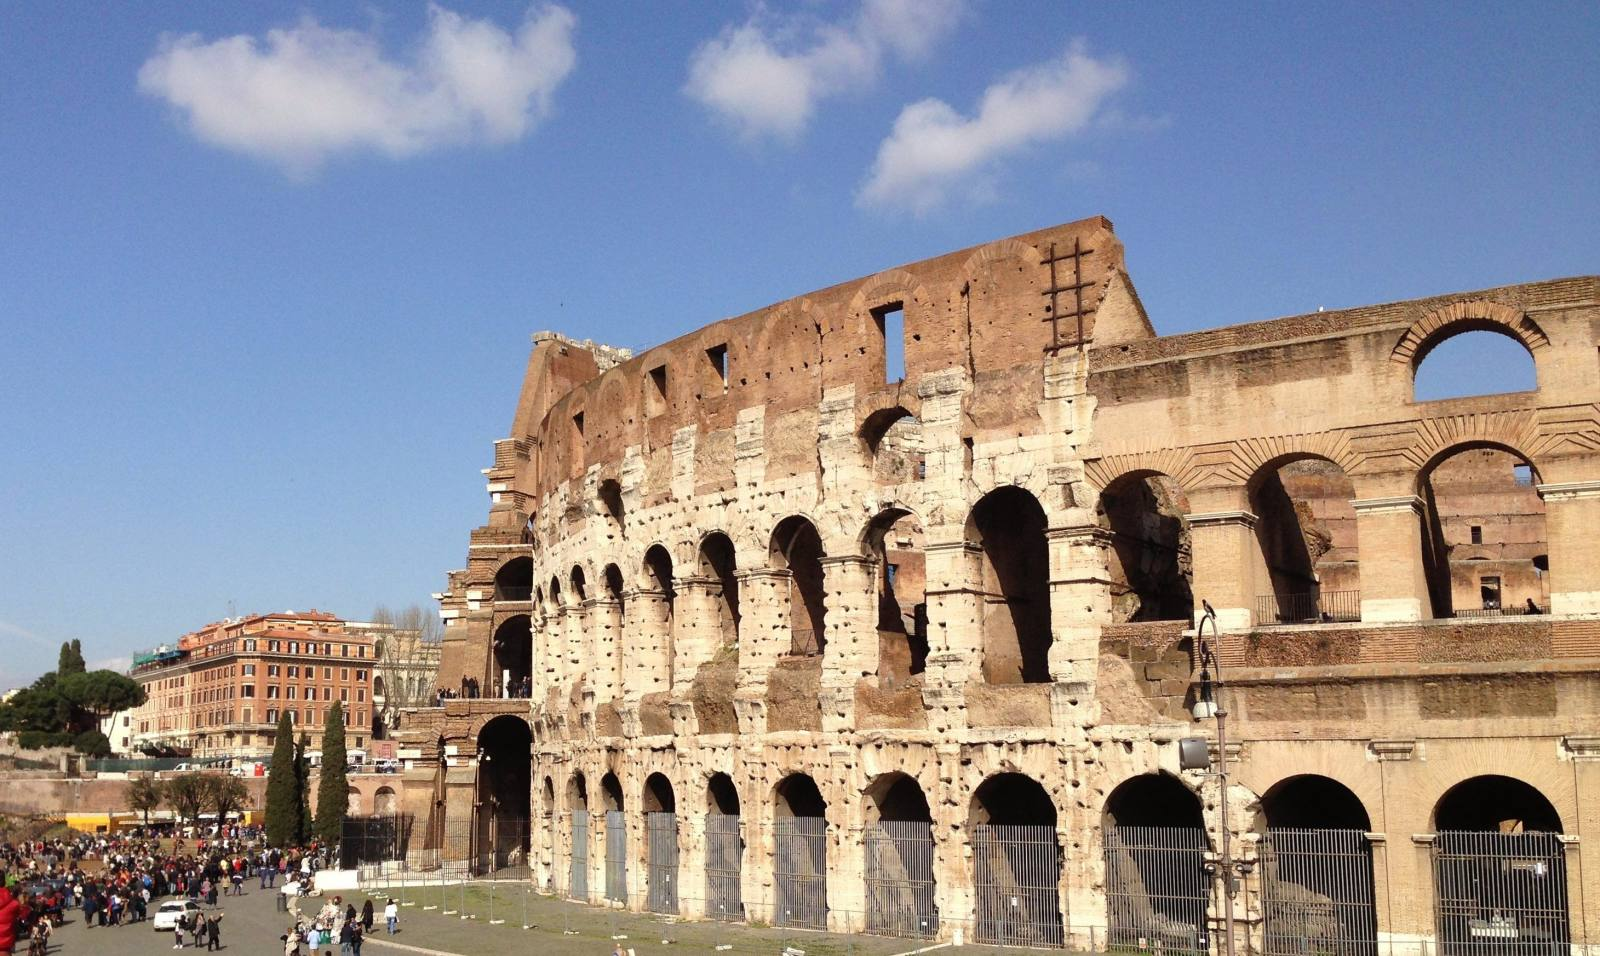 mini breaks can be difficult to organise, though they can satisfy your wanderlust, so here are just a few pointers on how to plan the perfect mini escape such as to see the Colosseum in Rome